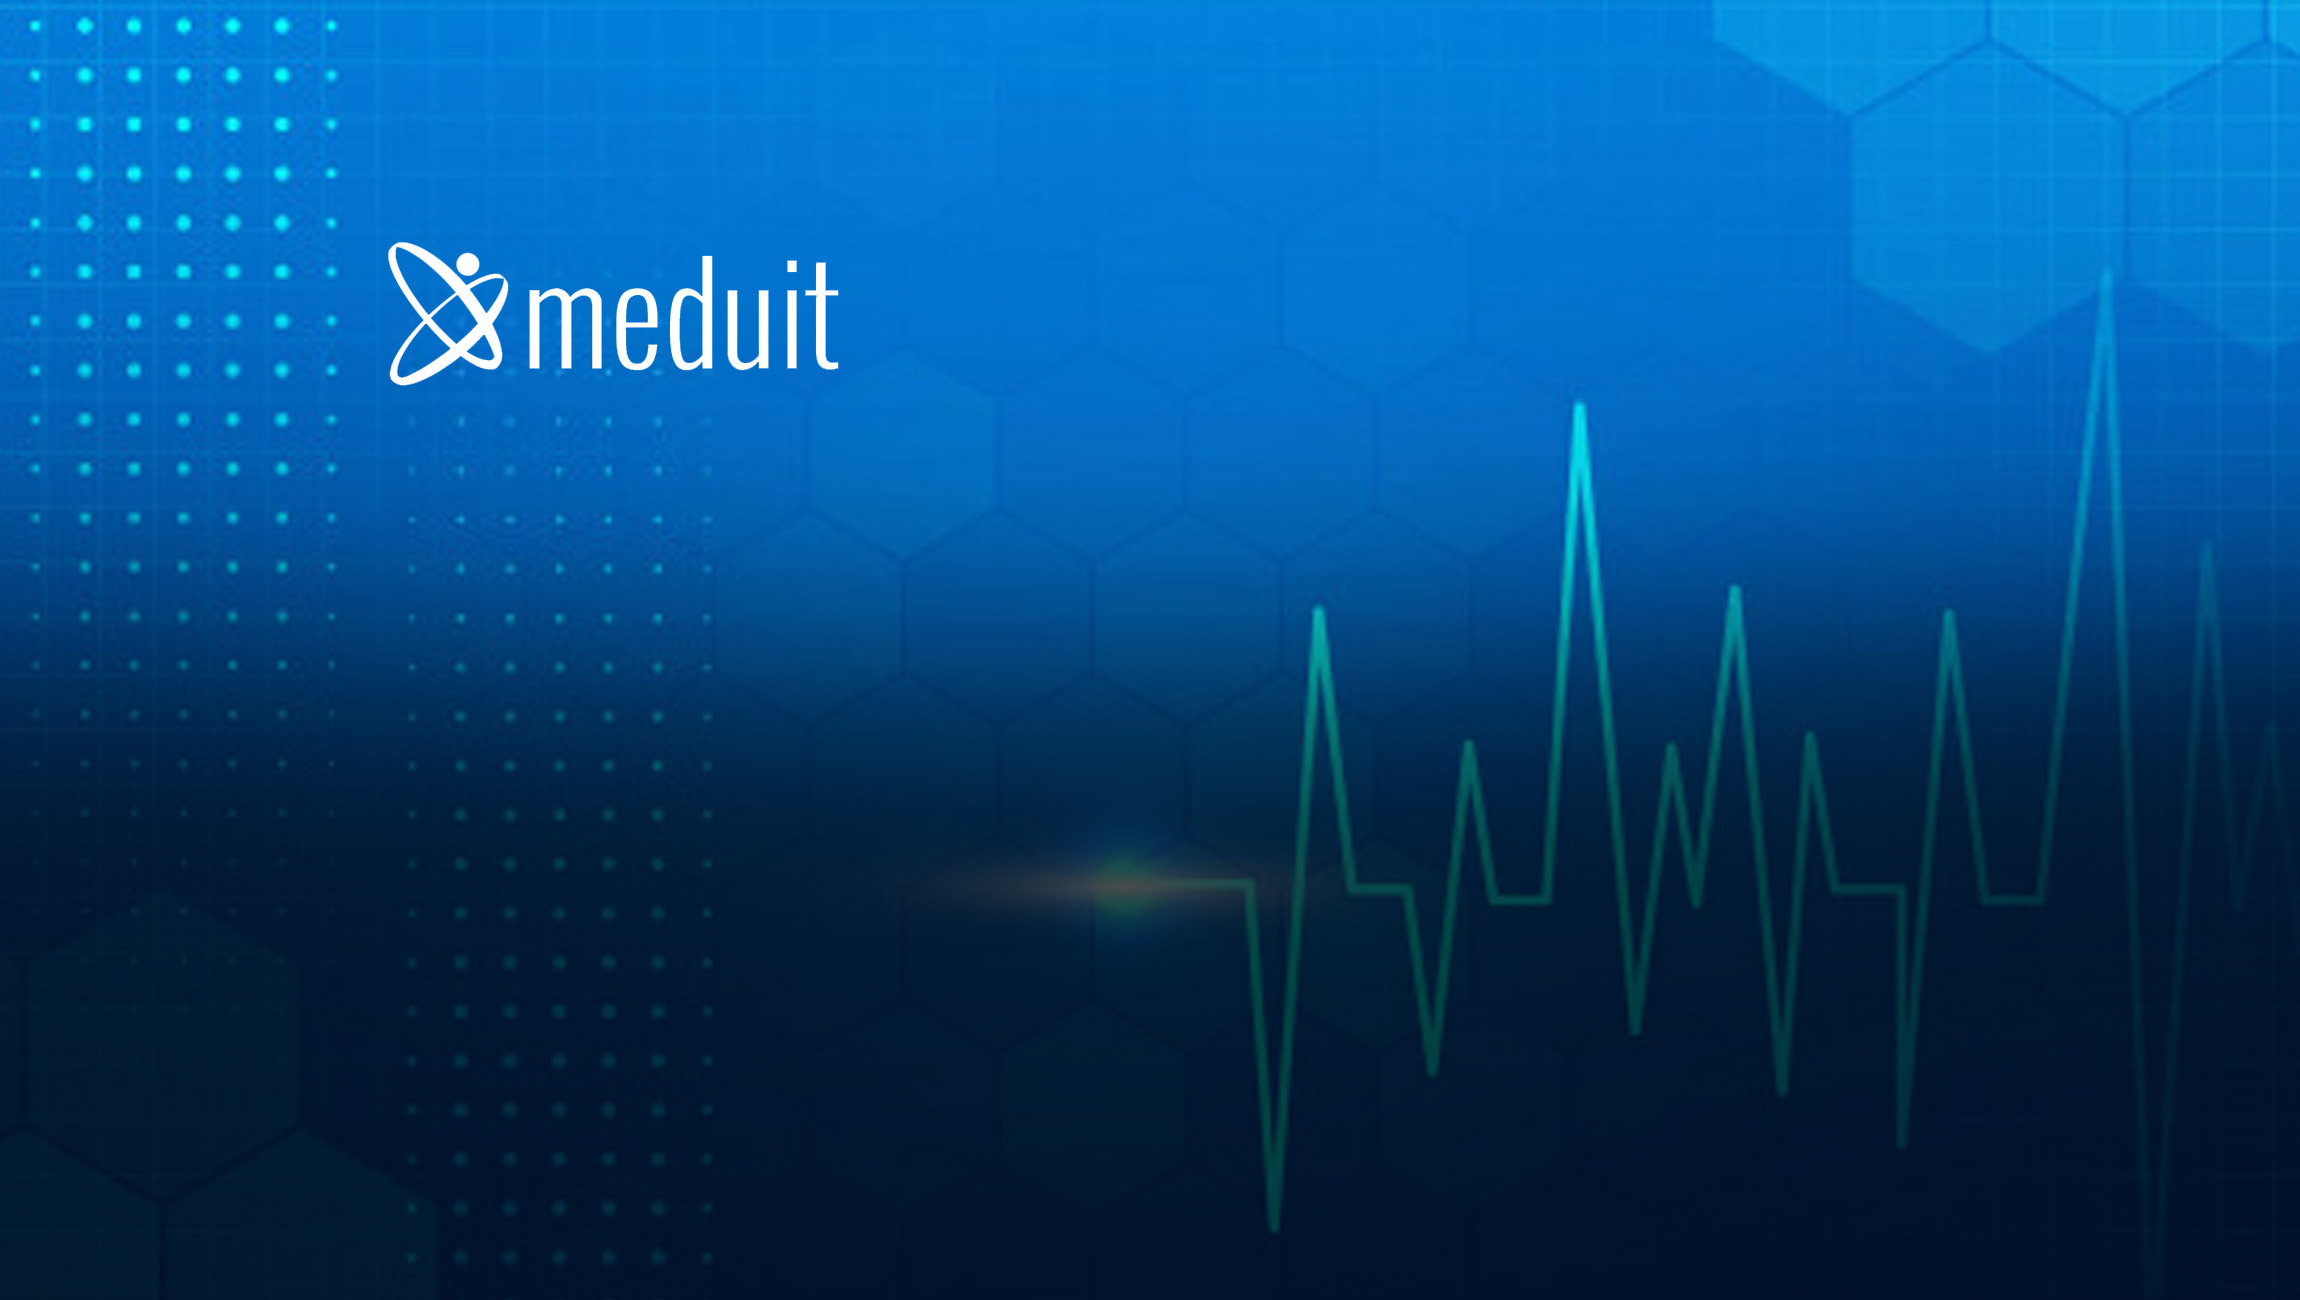 Revenue Cycle Solutions Leader CMRE Financial Services, Inc. Joins Meduit to Form One of the Largest RCM Companies in the Nation